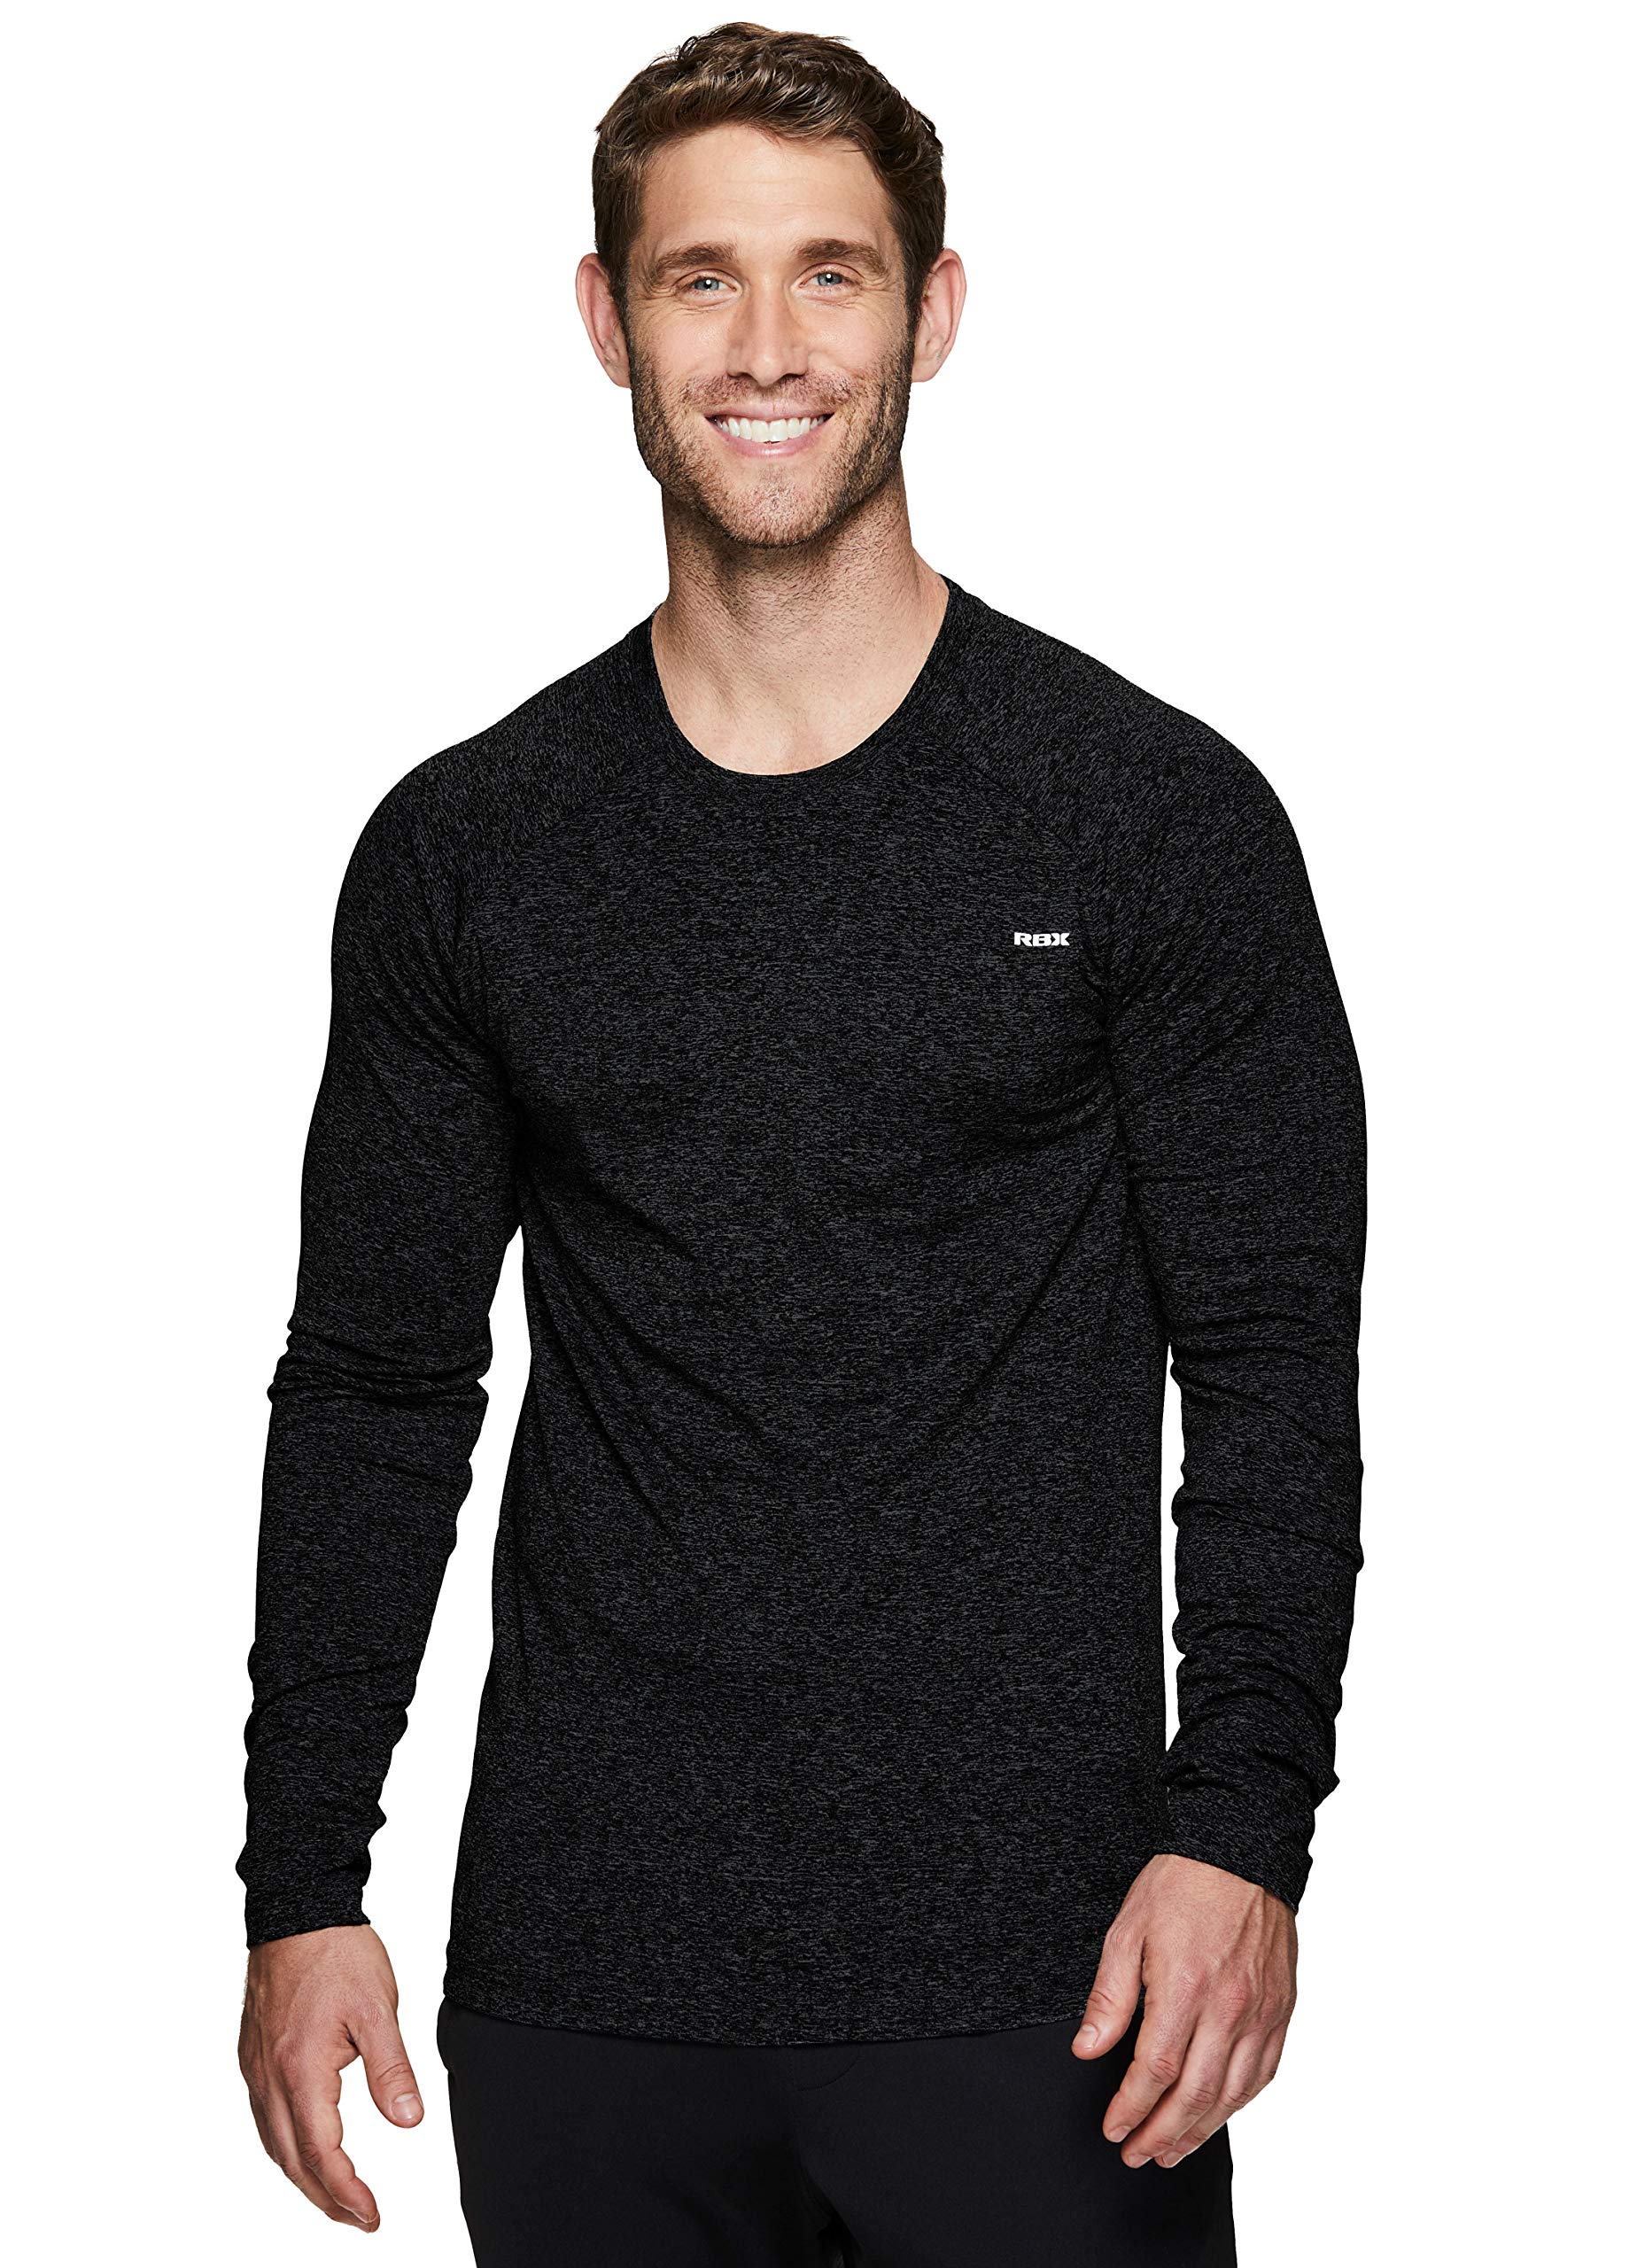 RBX Active Men's Long Sleeve Crew Neck Athletic Performance Base Layer T-Shirt